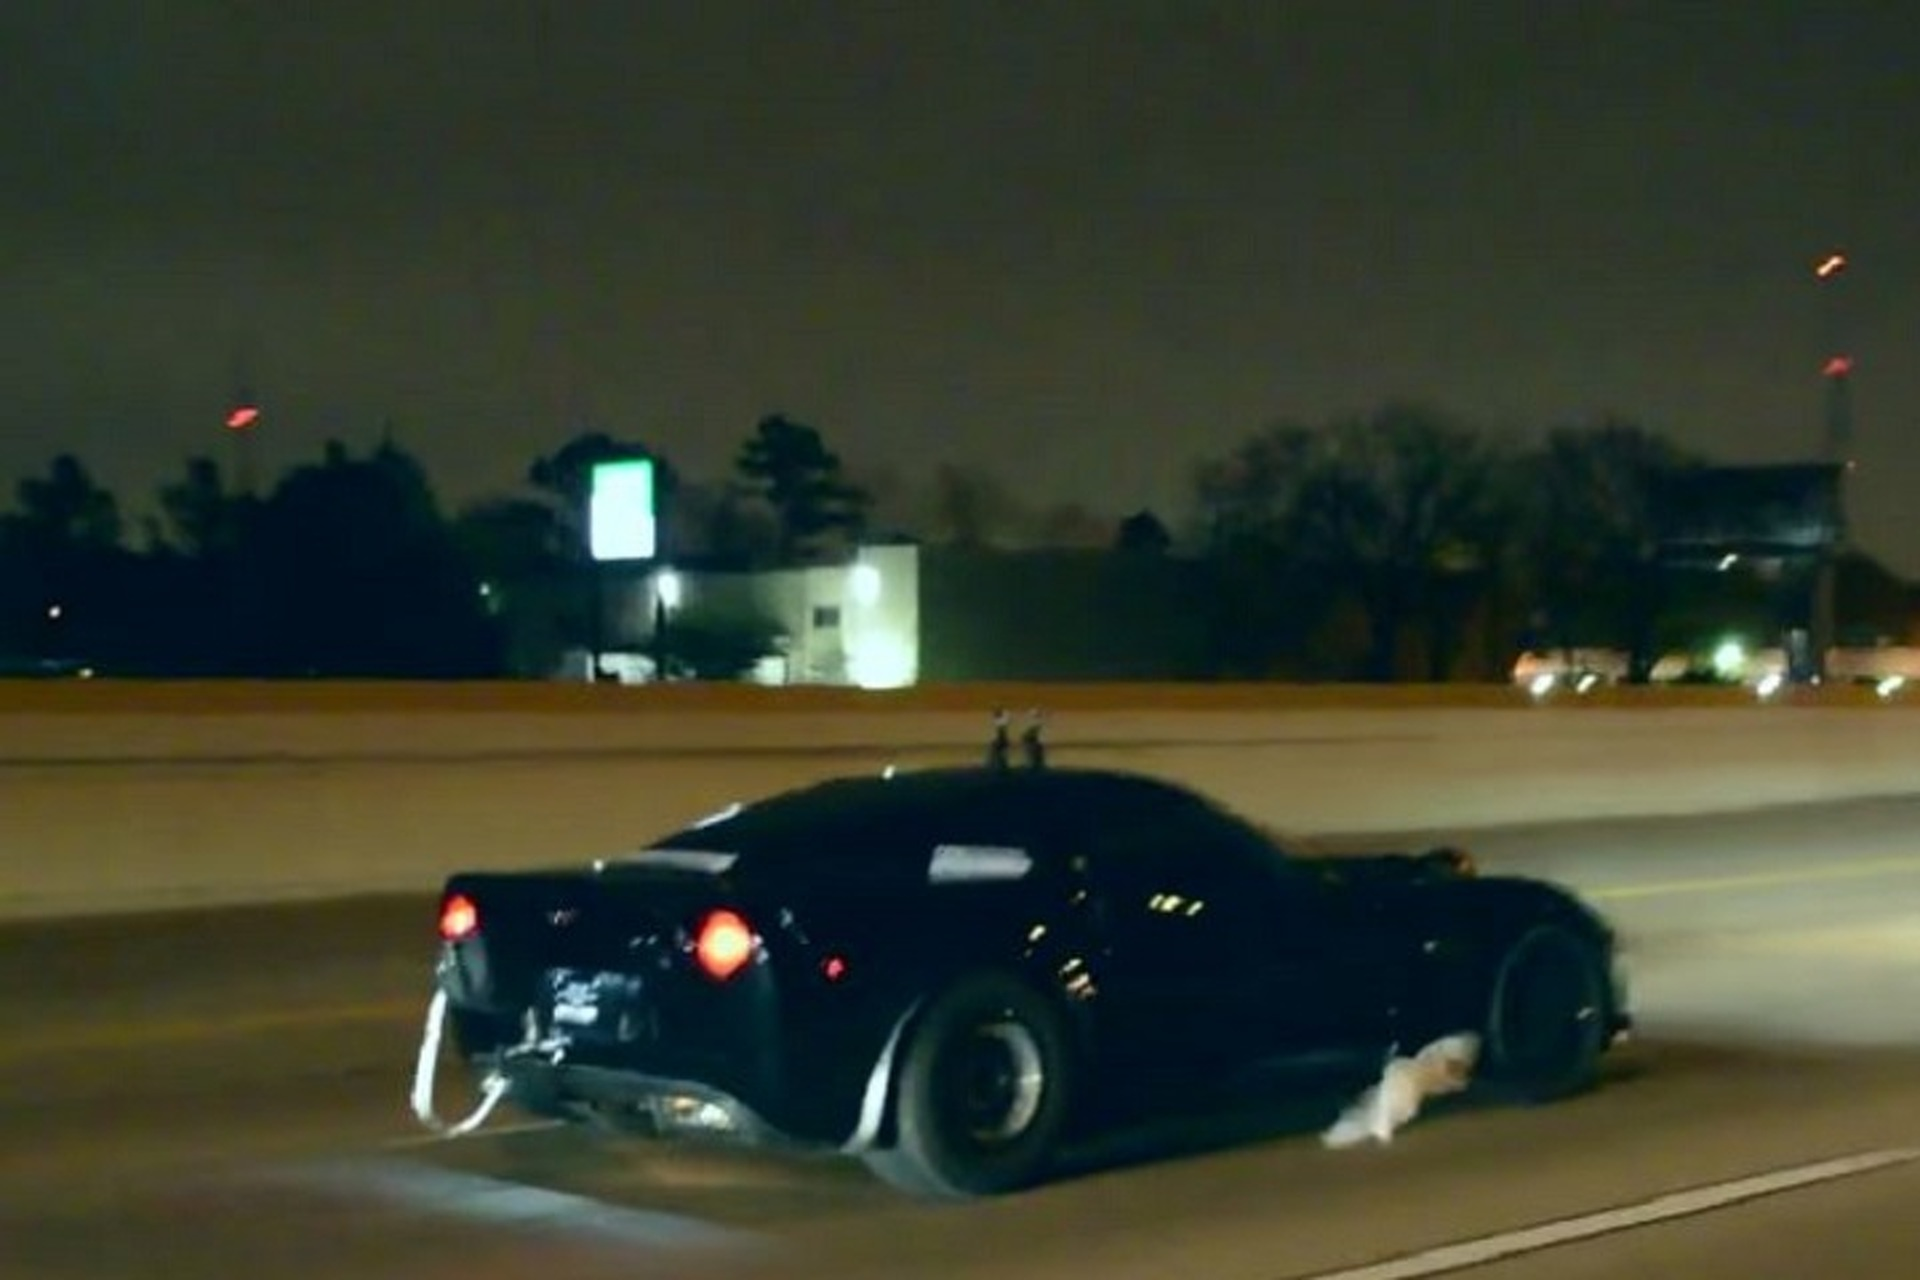 Watch This 2,400HP Corvette Blast Down a Texas Highway